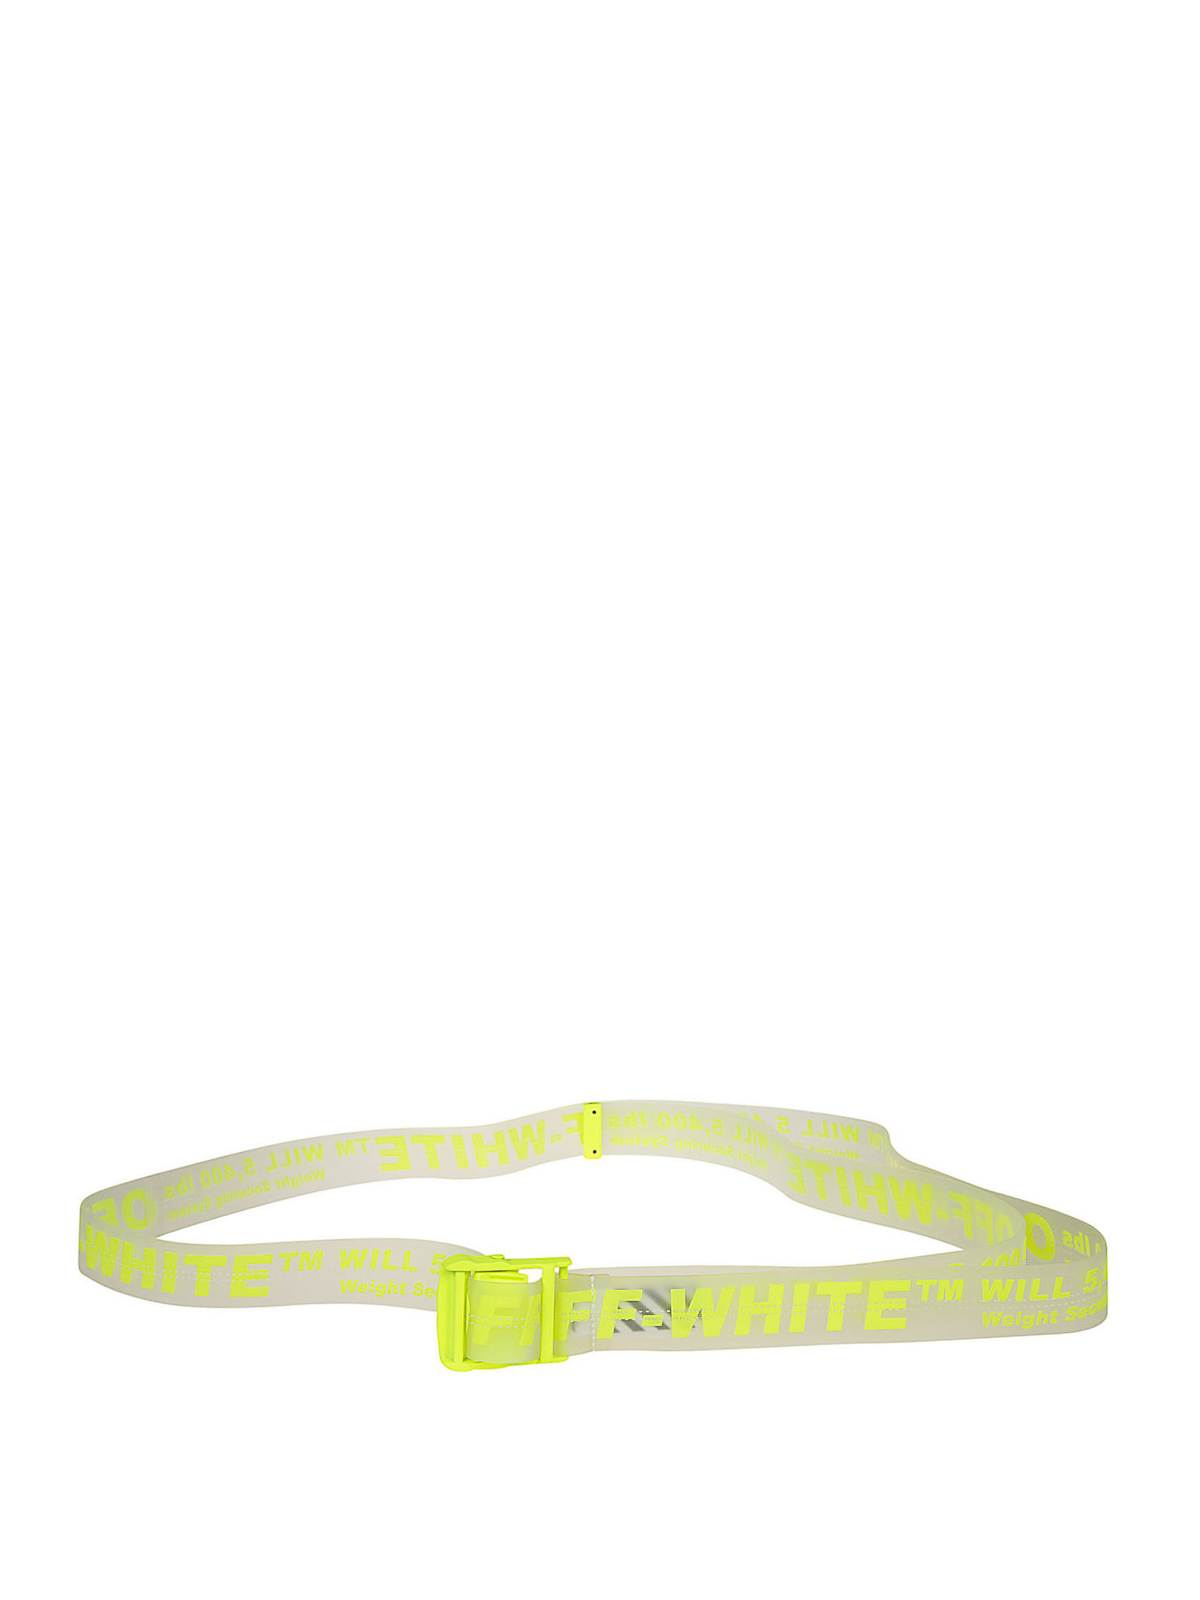 design di qualità 90697 de252 Off-White - Cintura Industrial in pvc giallo fluo - cinture ...